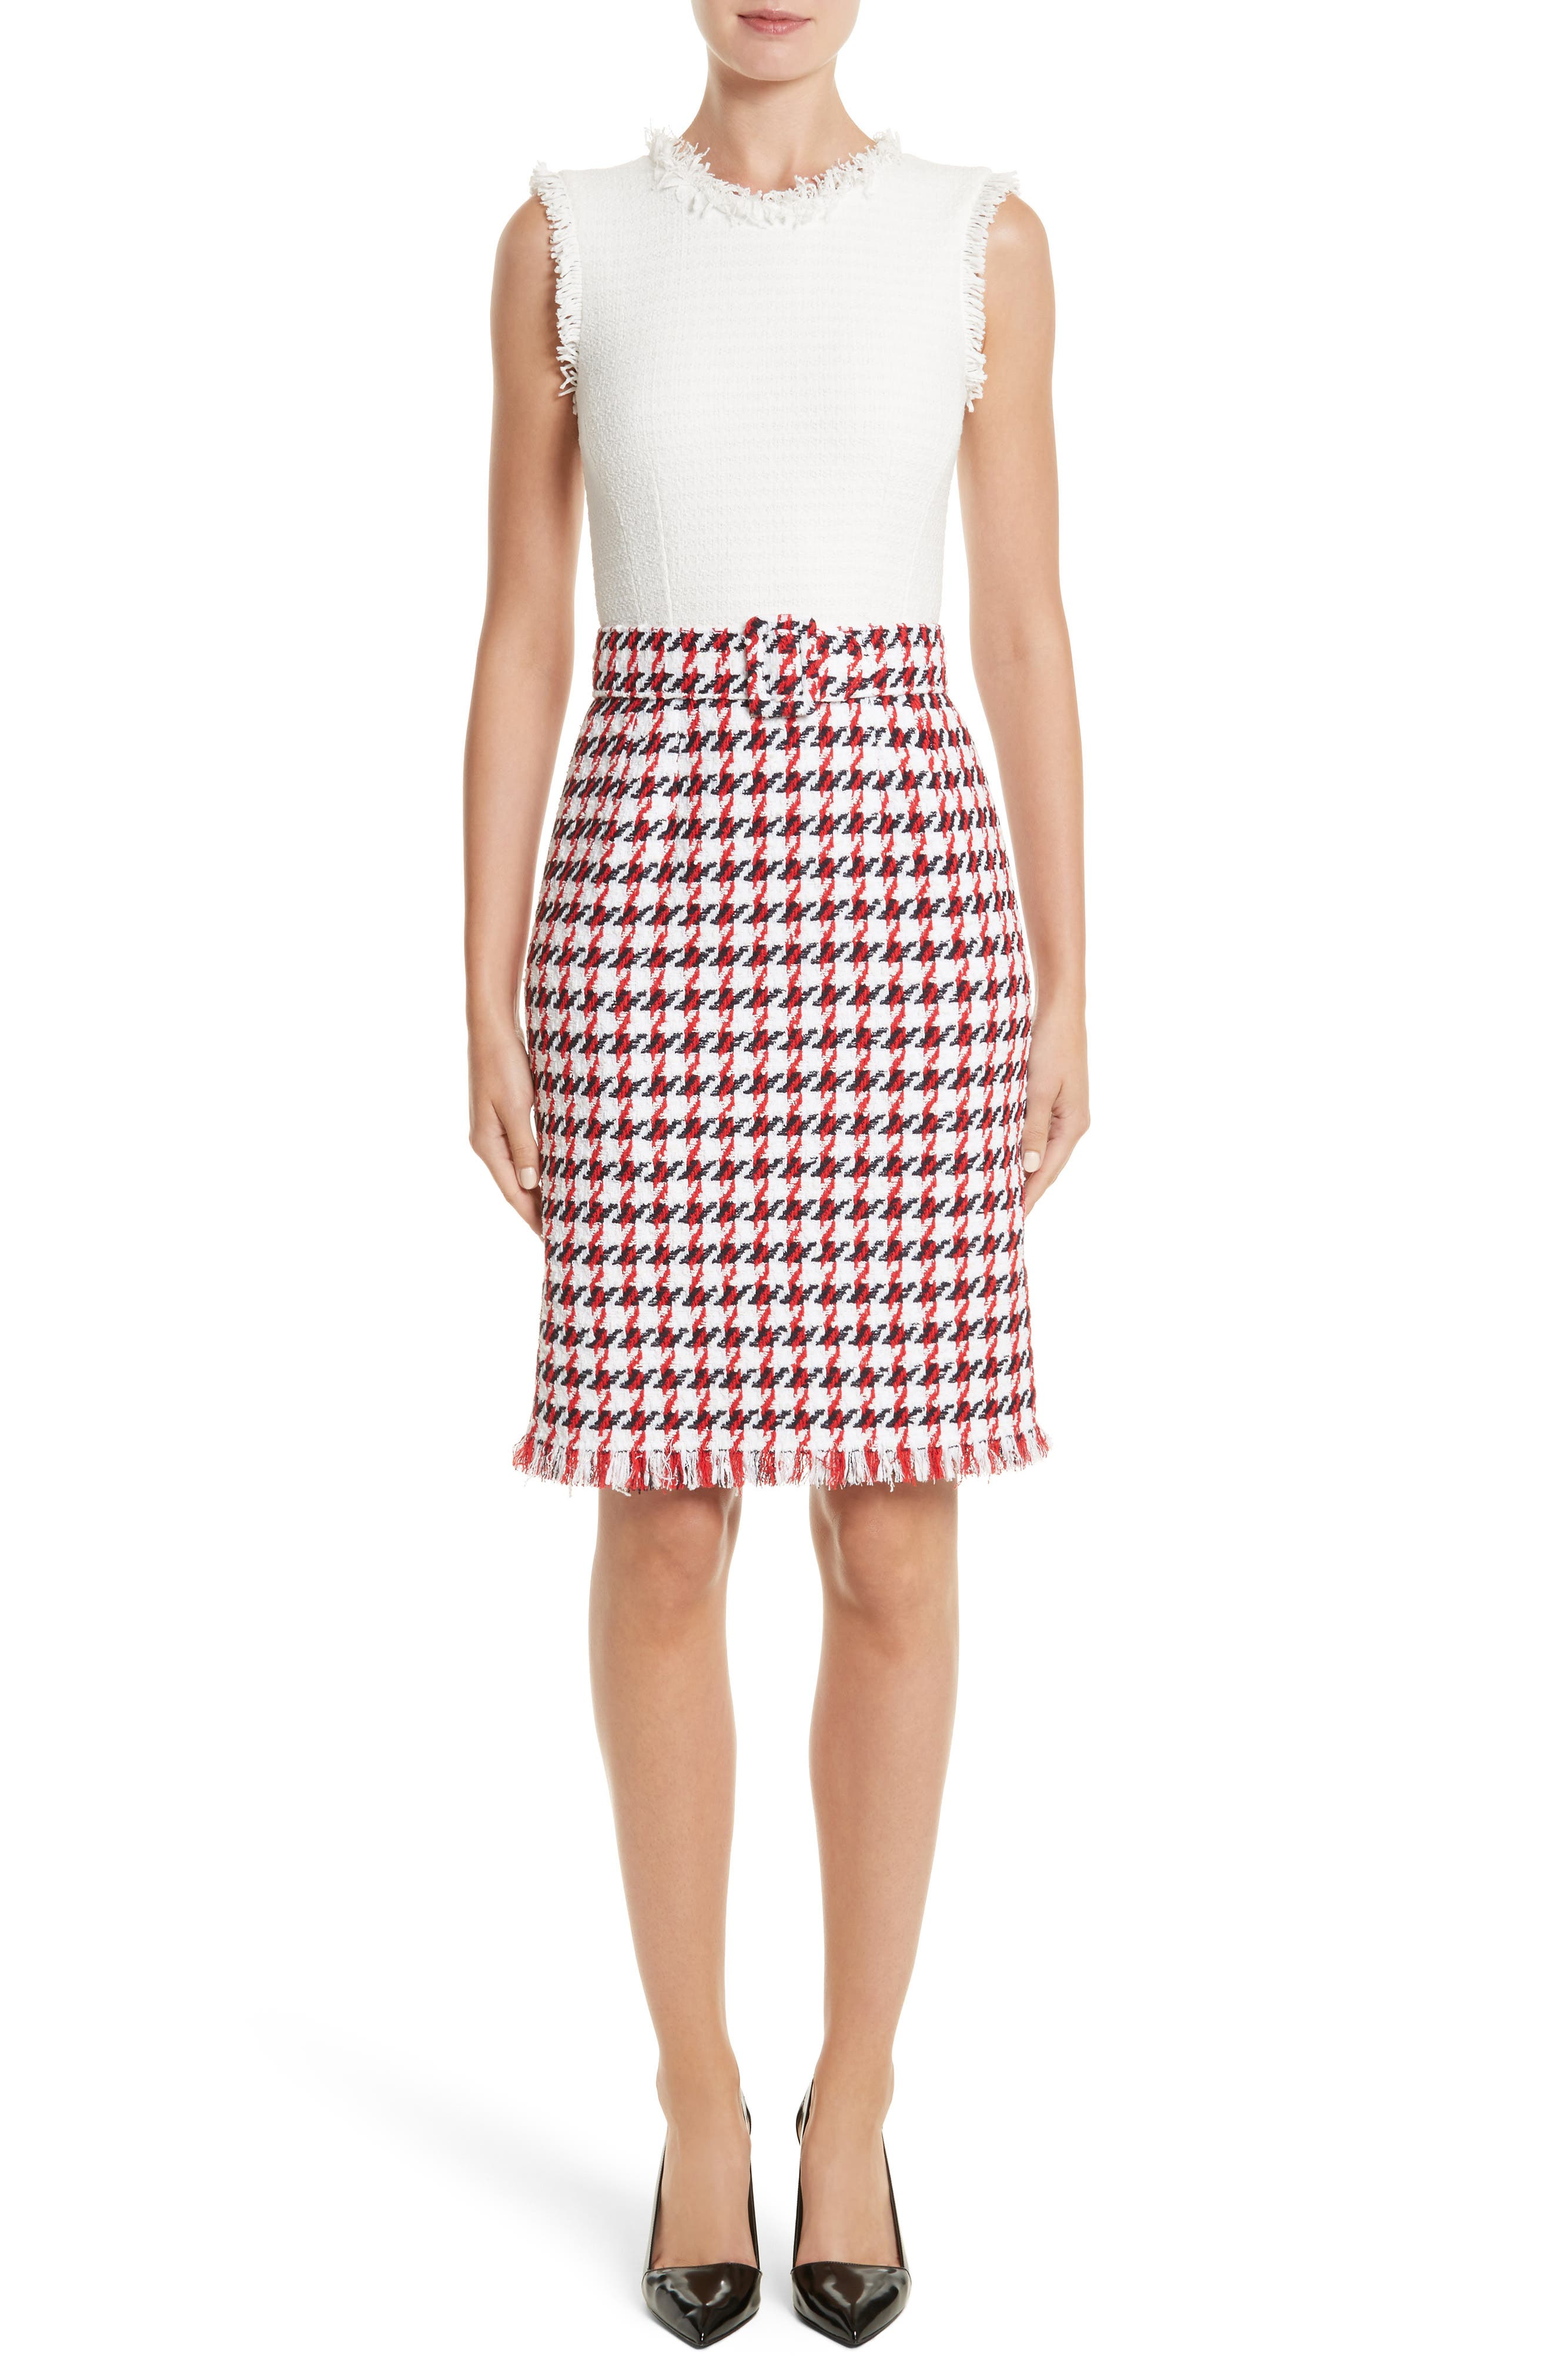 Bicolor Houndstooth Tweed Dress,                             Main thumbnail 1, color,                             900